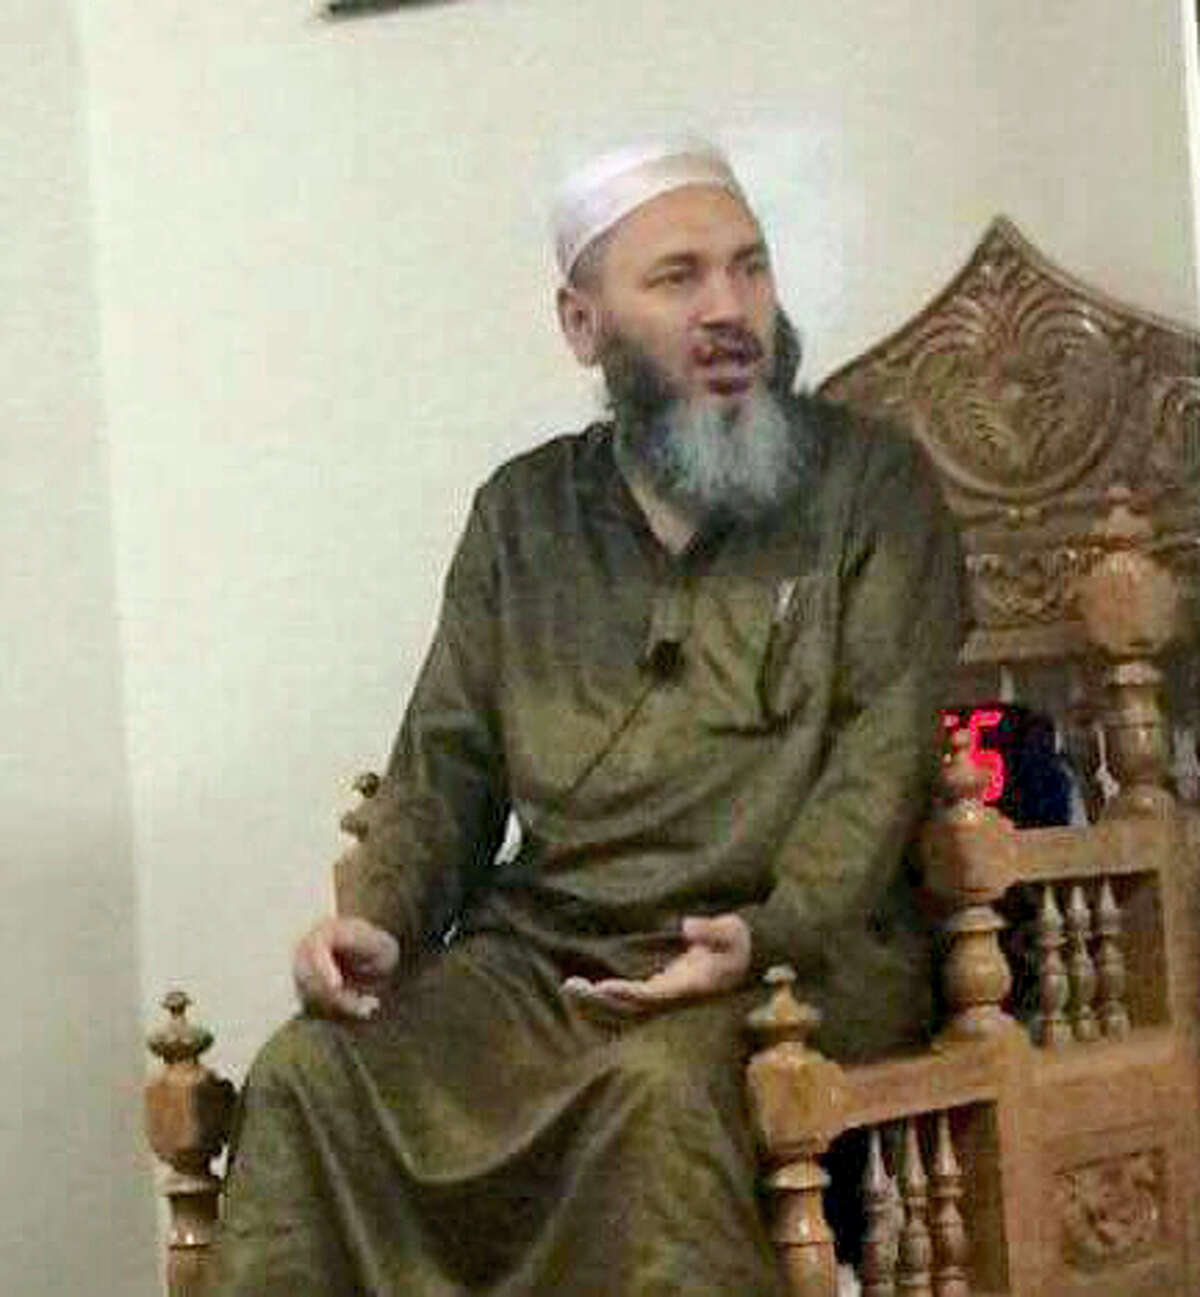 This undated photo provided by Abdul Chowdhury, Imam Maulama Akonjee is shown. Akonjee and another man died in a fatal shooting Saturday, Aug. 13, 2016, as they left the Al-Furqan Jame Masjid mosque in the Queens borough of New York after prayers. Police say that motive has yet to be determined.